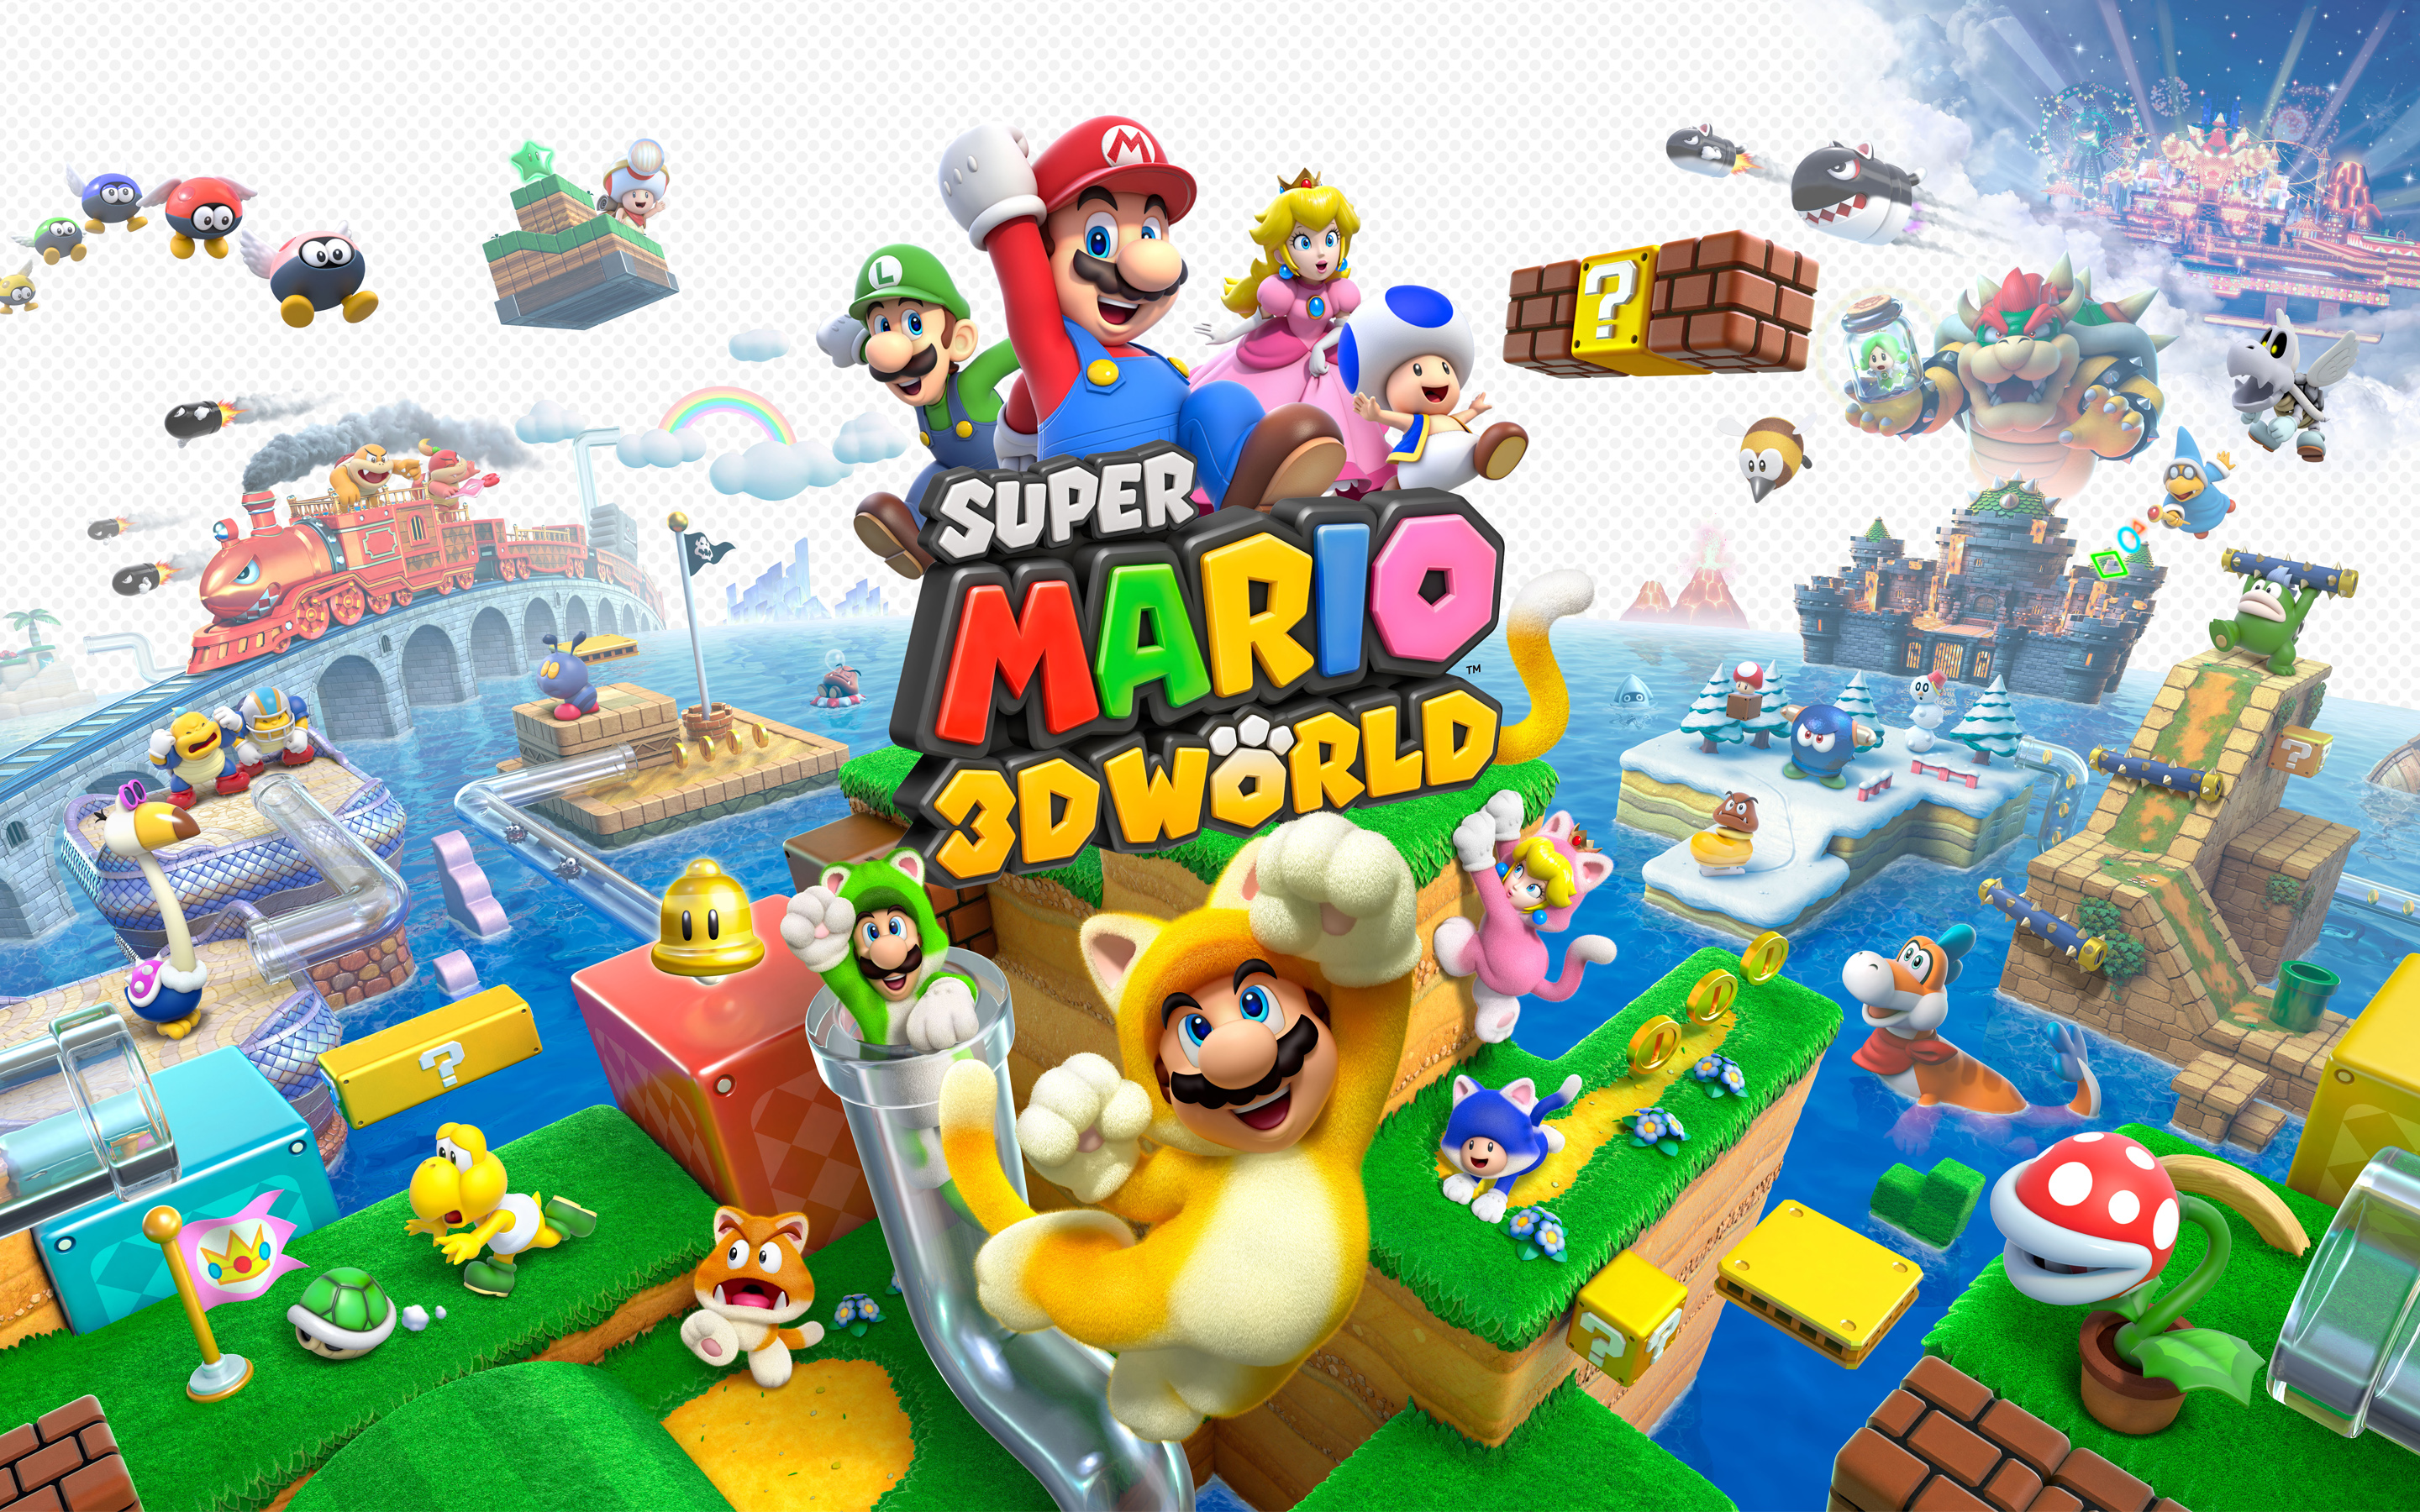 Papel Parede Mario ~ Papel de Parede Super Mario 3D World Wallpaper para Download no Celular ou Computador PC